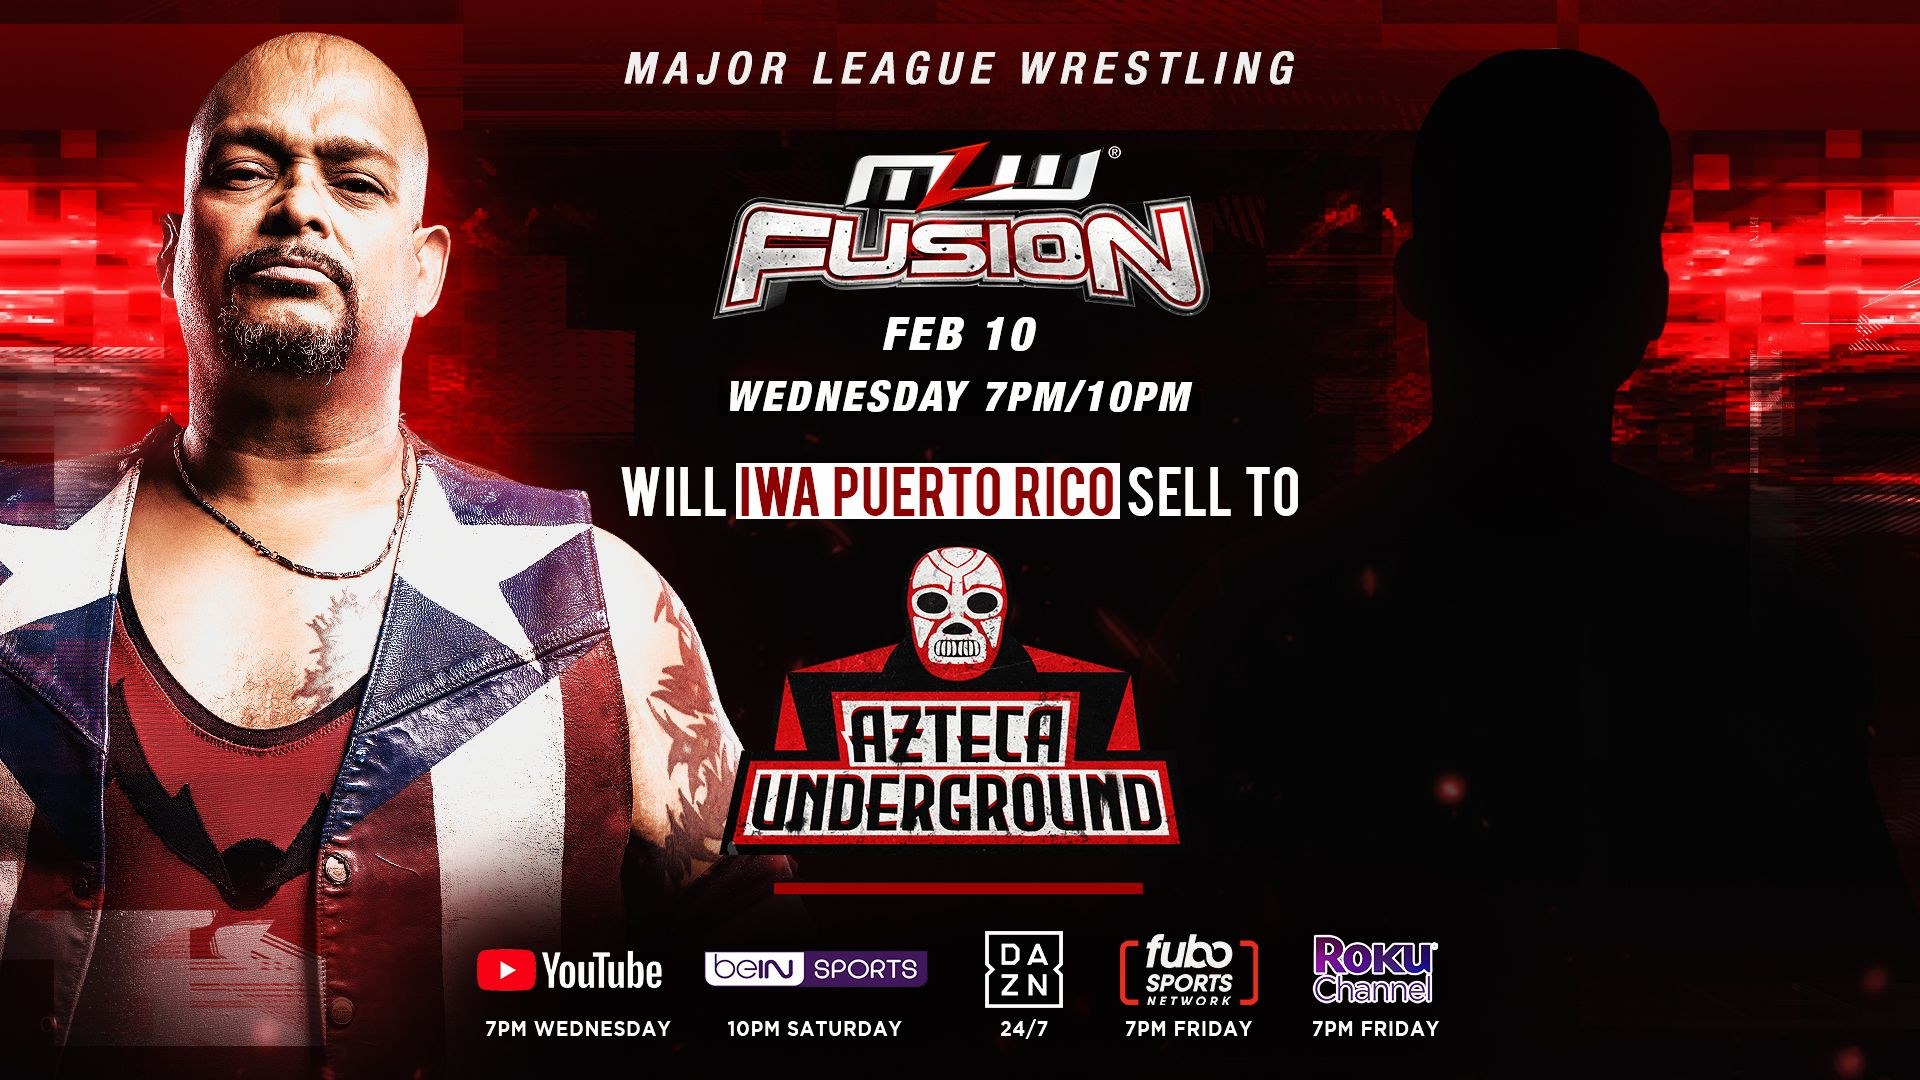 MLW Fusion Preview for 2/10/21